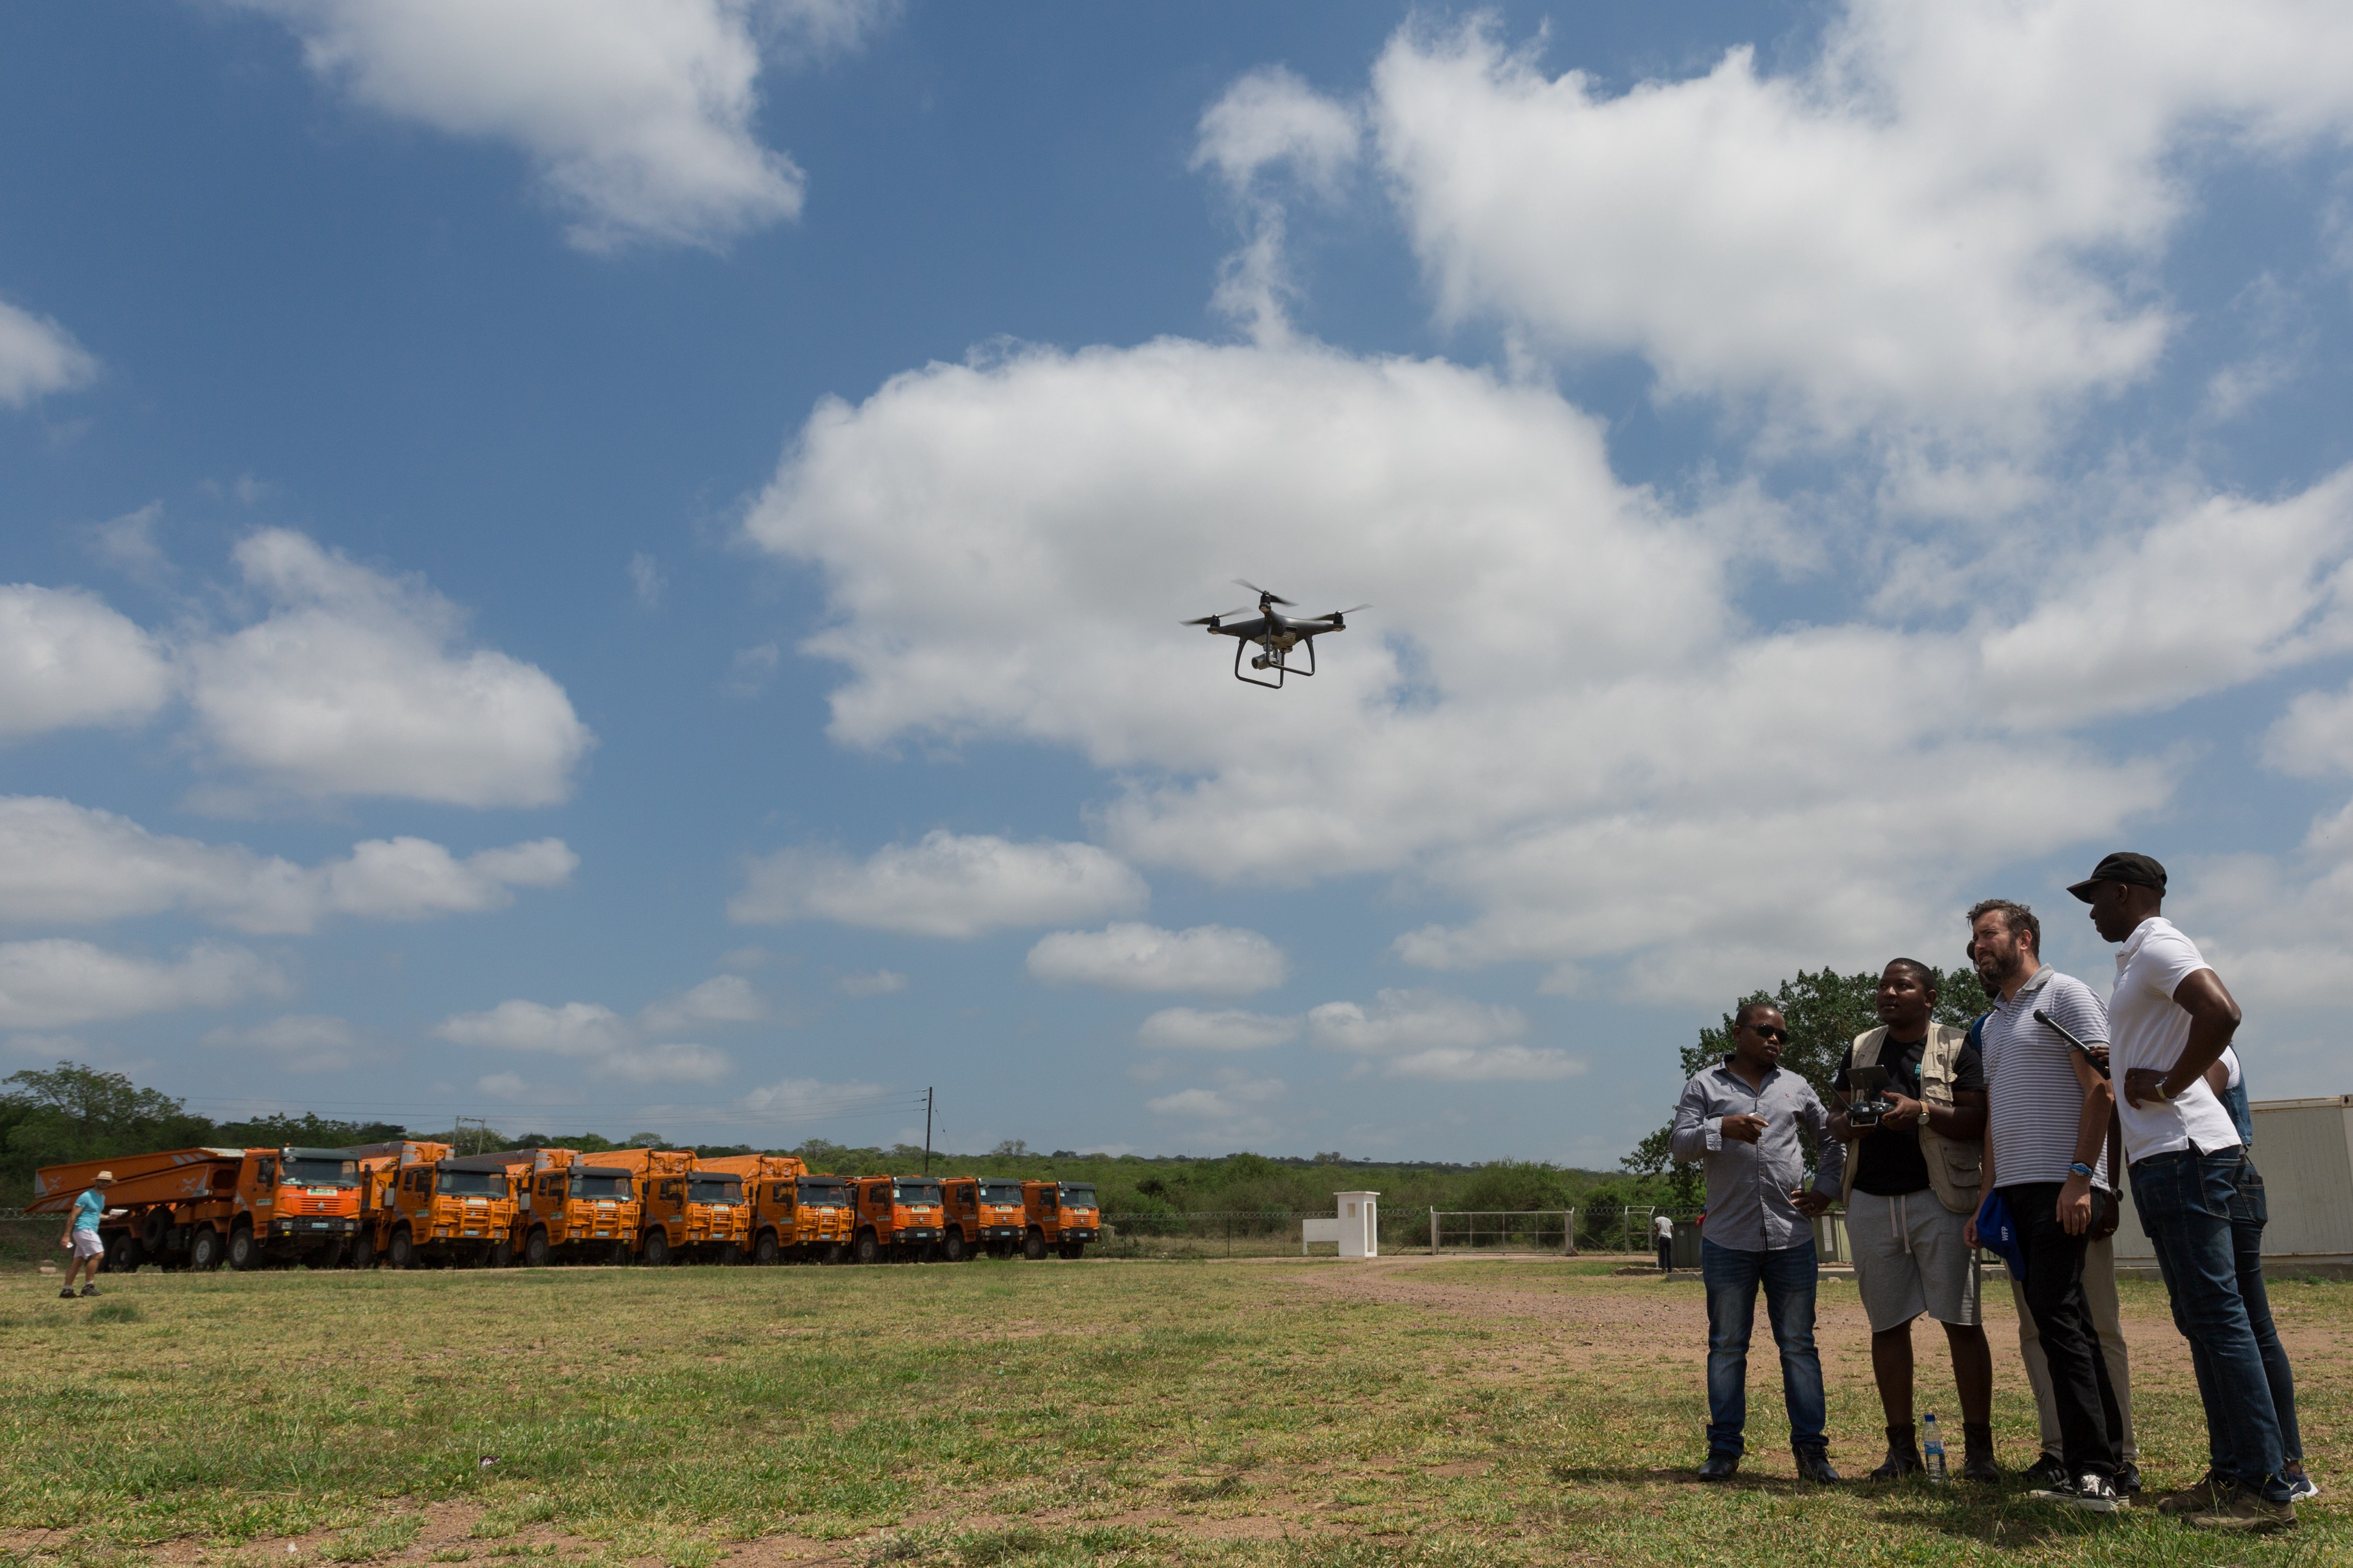 Flying in formation: Eswatini soars alongside Madagascar and